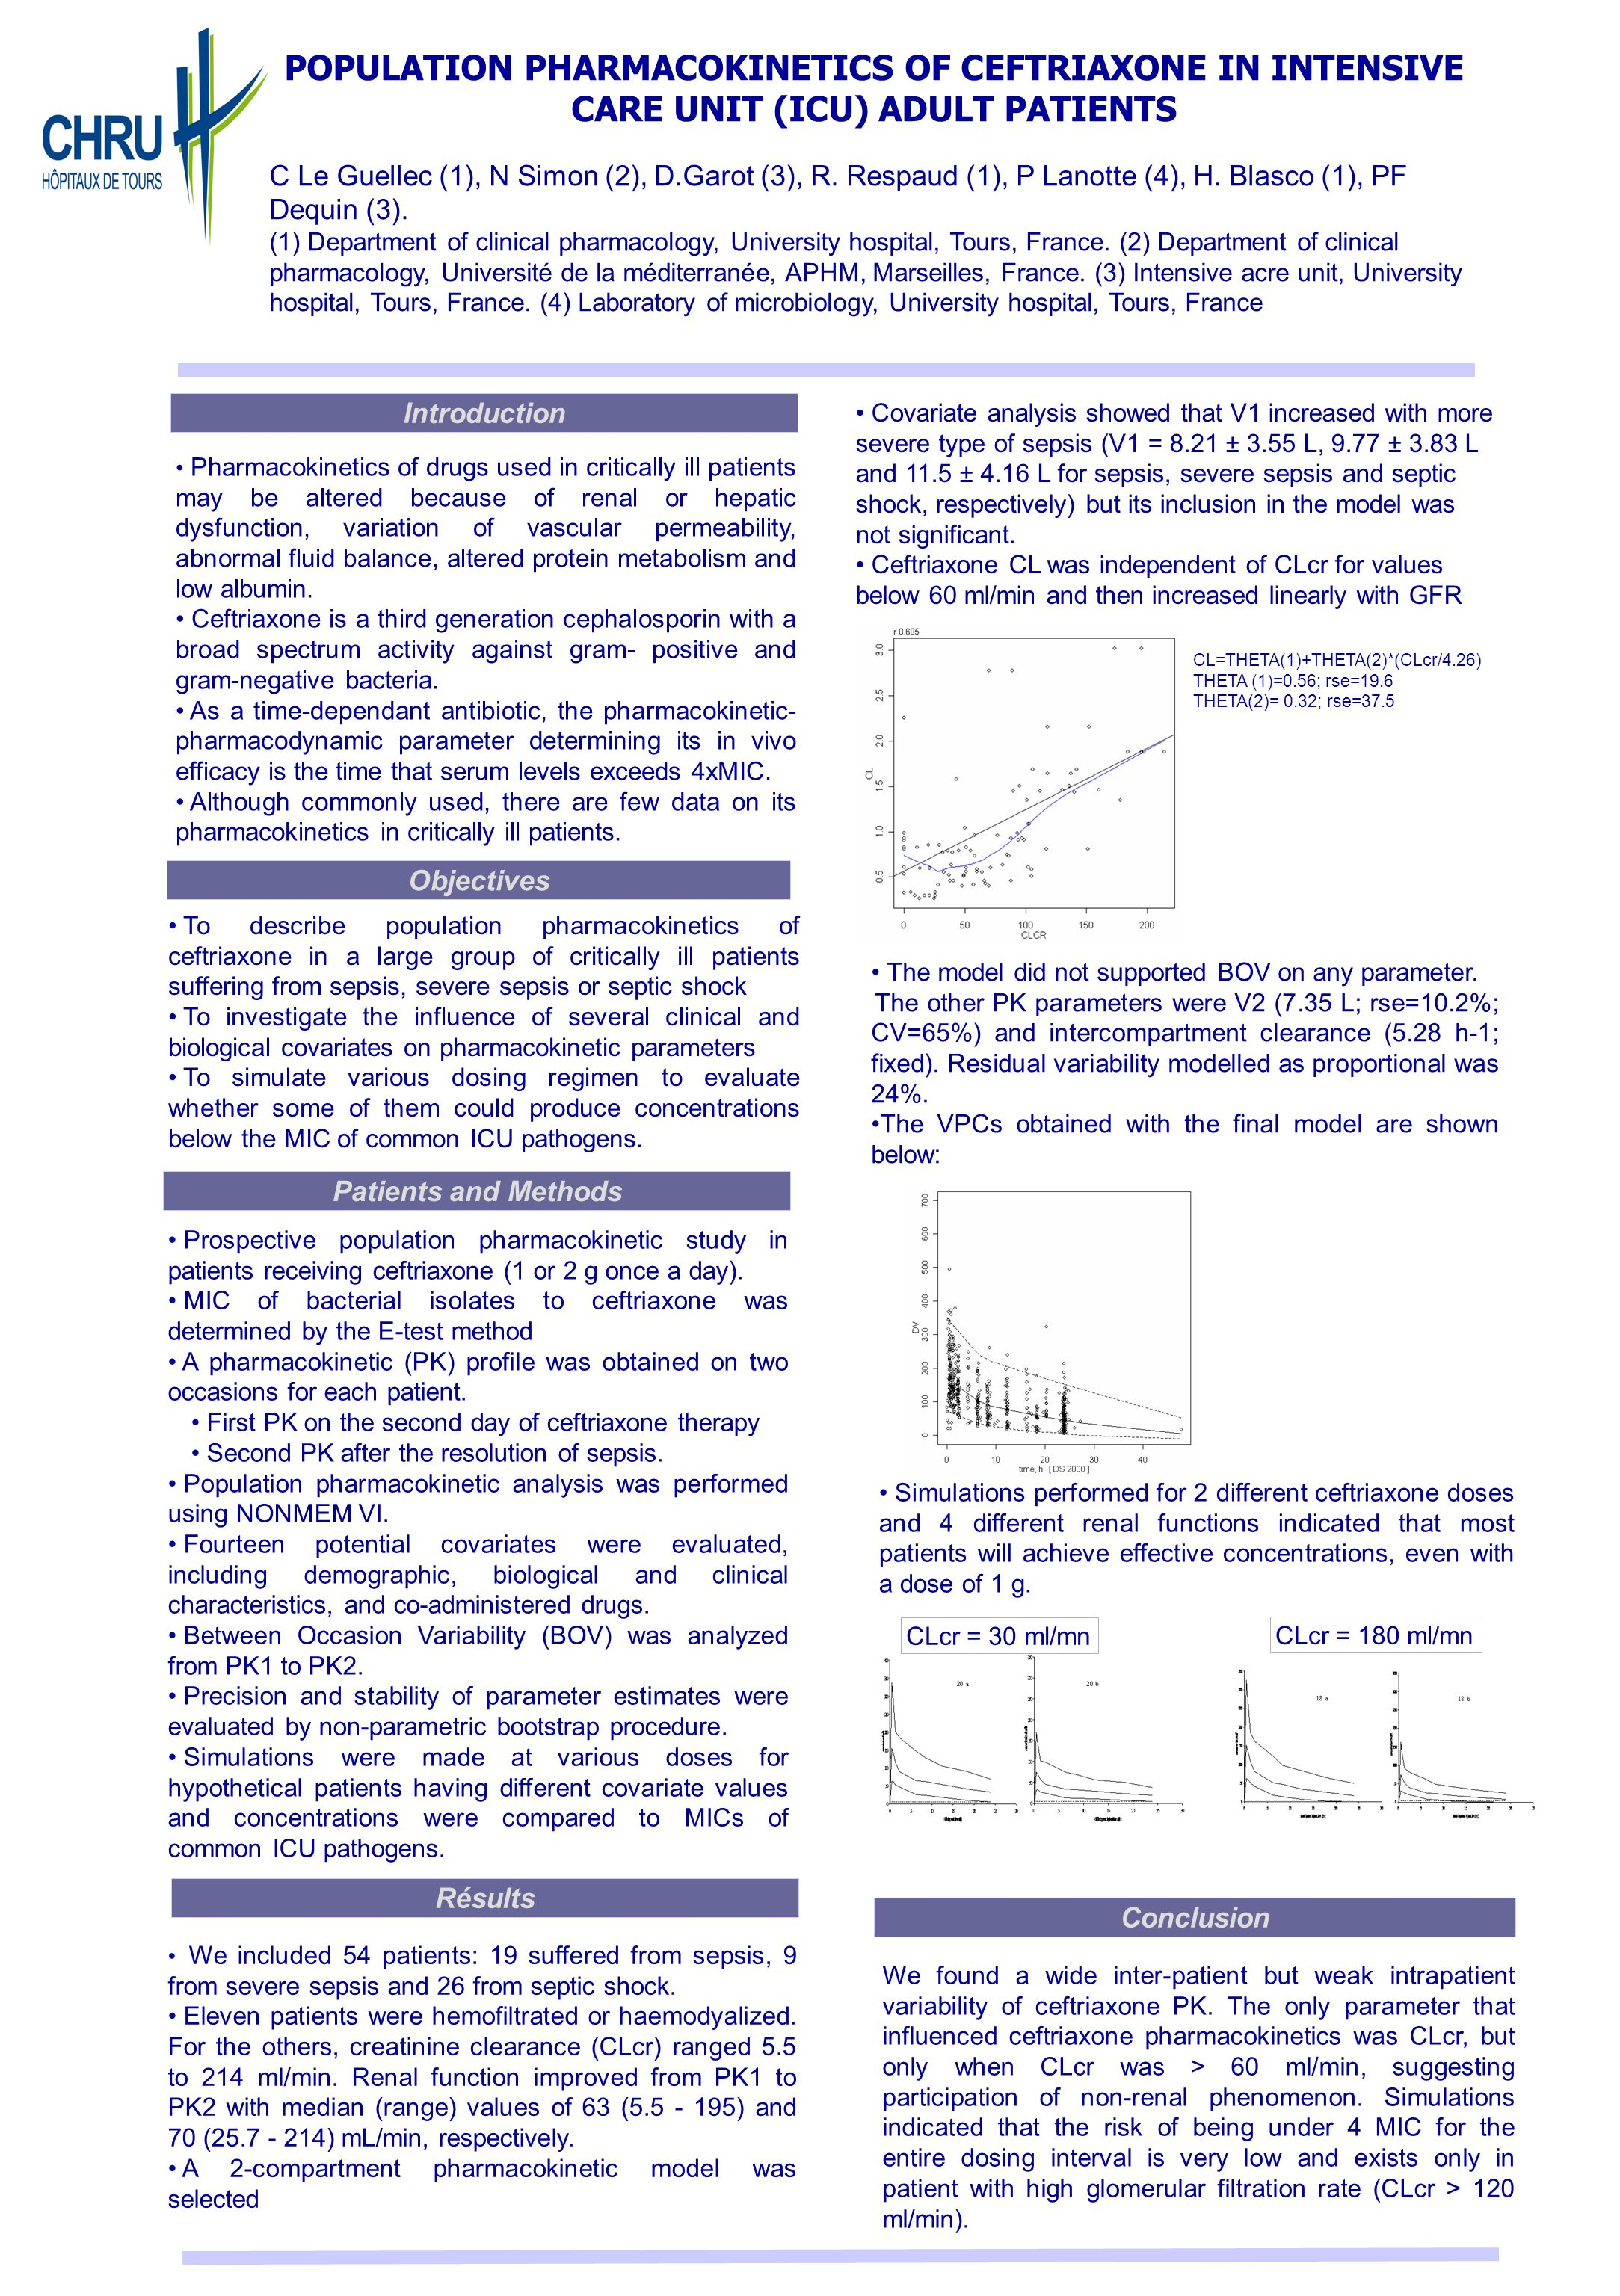 POPULATION PHARMACOKINETICS OF CEFTRIAXONE IN INTENSIVE CARE UNIT (ICU) ADULT PATIENTS C Le Guellec (1), N Simon (2), D.Garot (3), R.